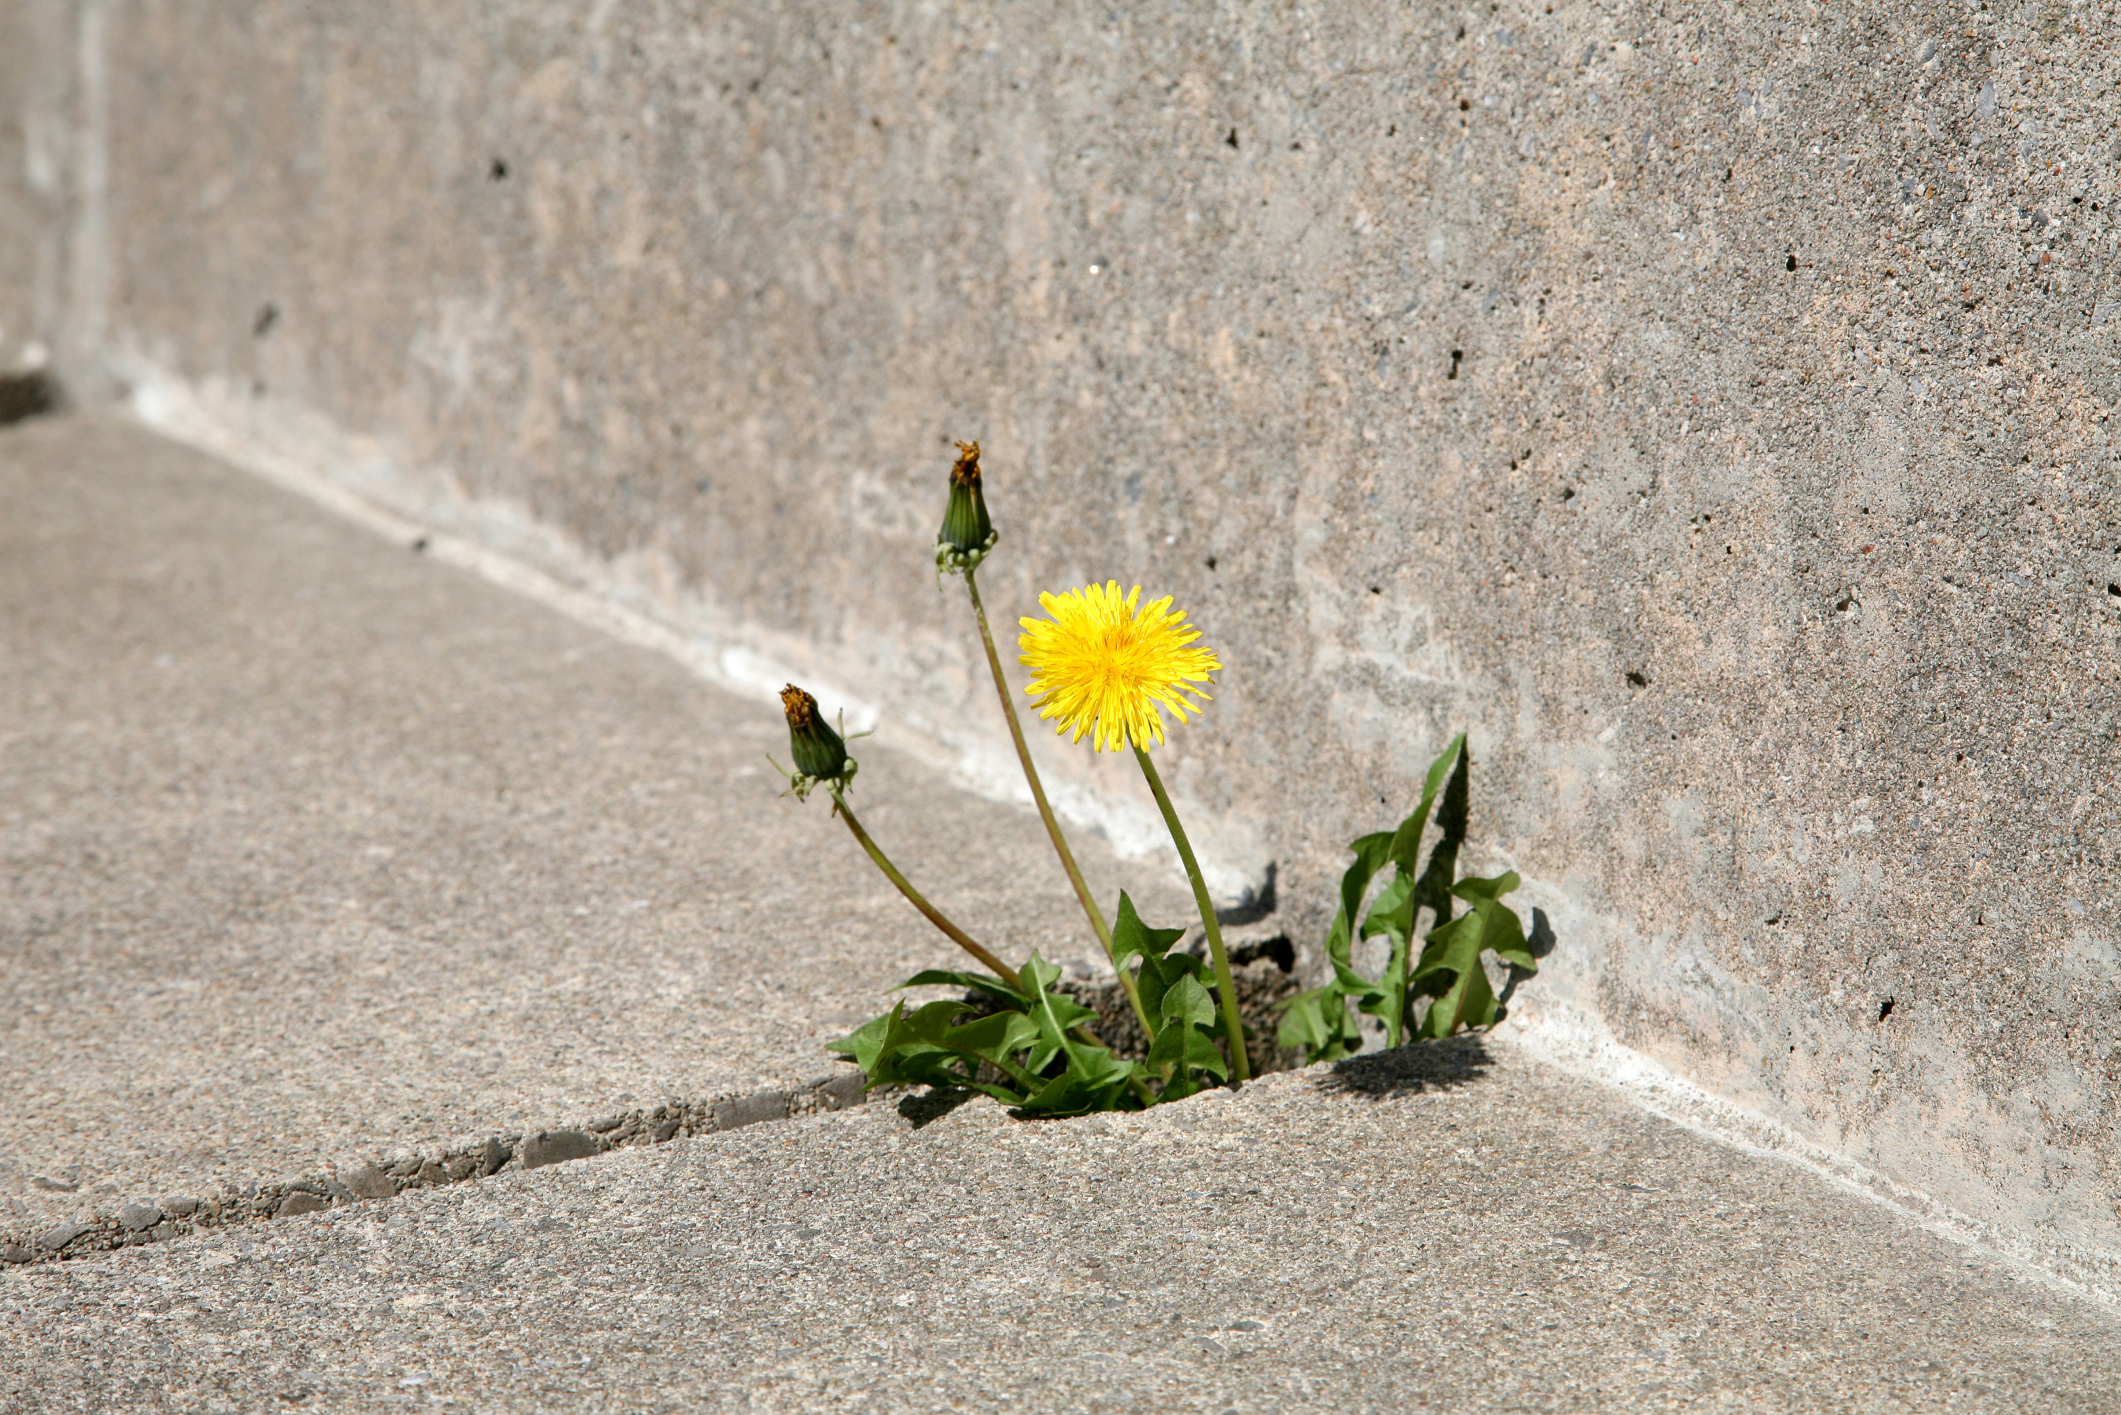 How To Kill Weeds With Baking Soda Home Guides Sf Gate